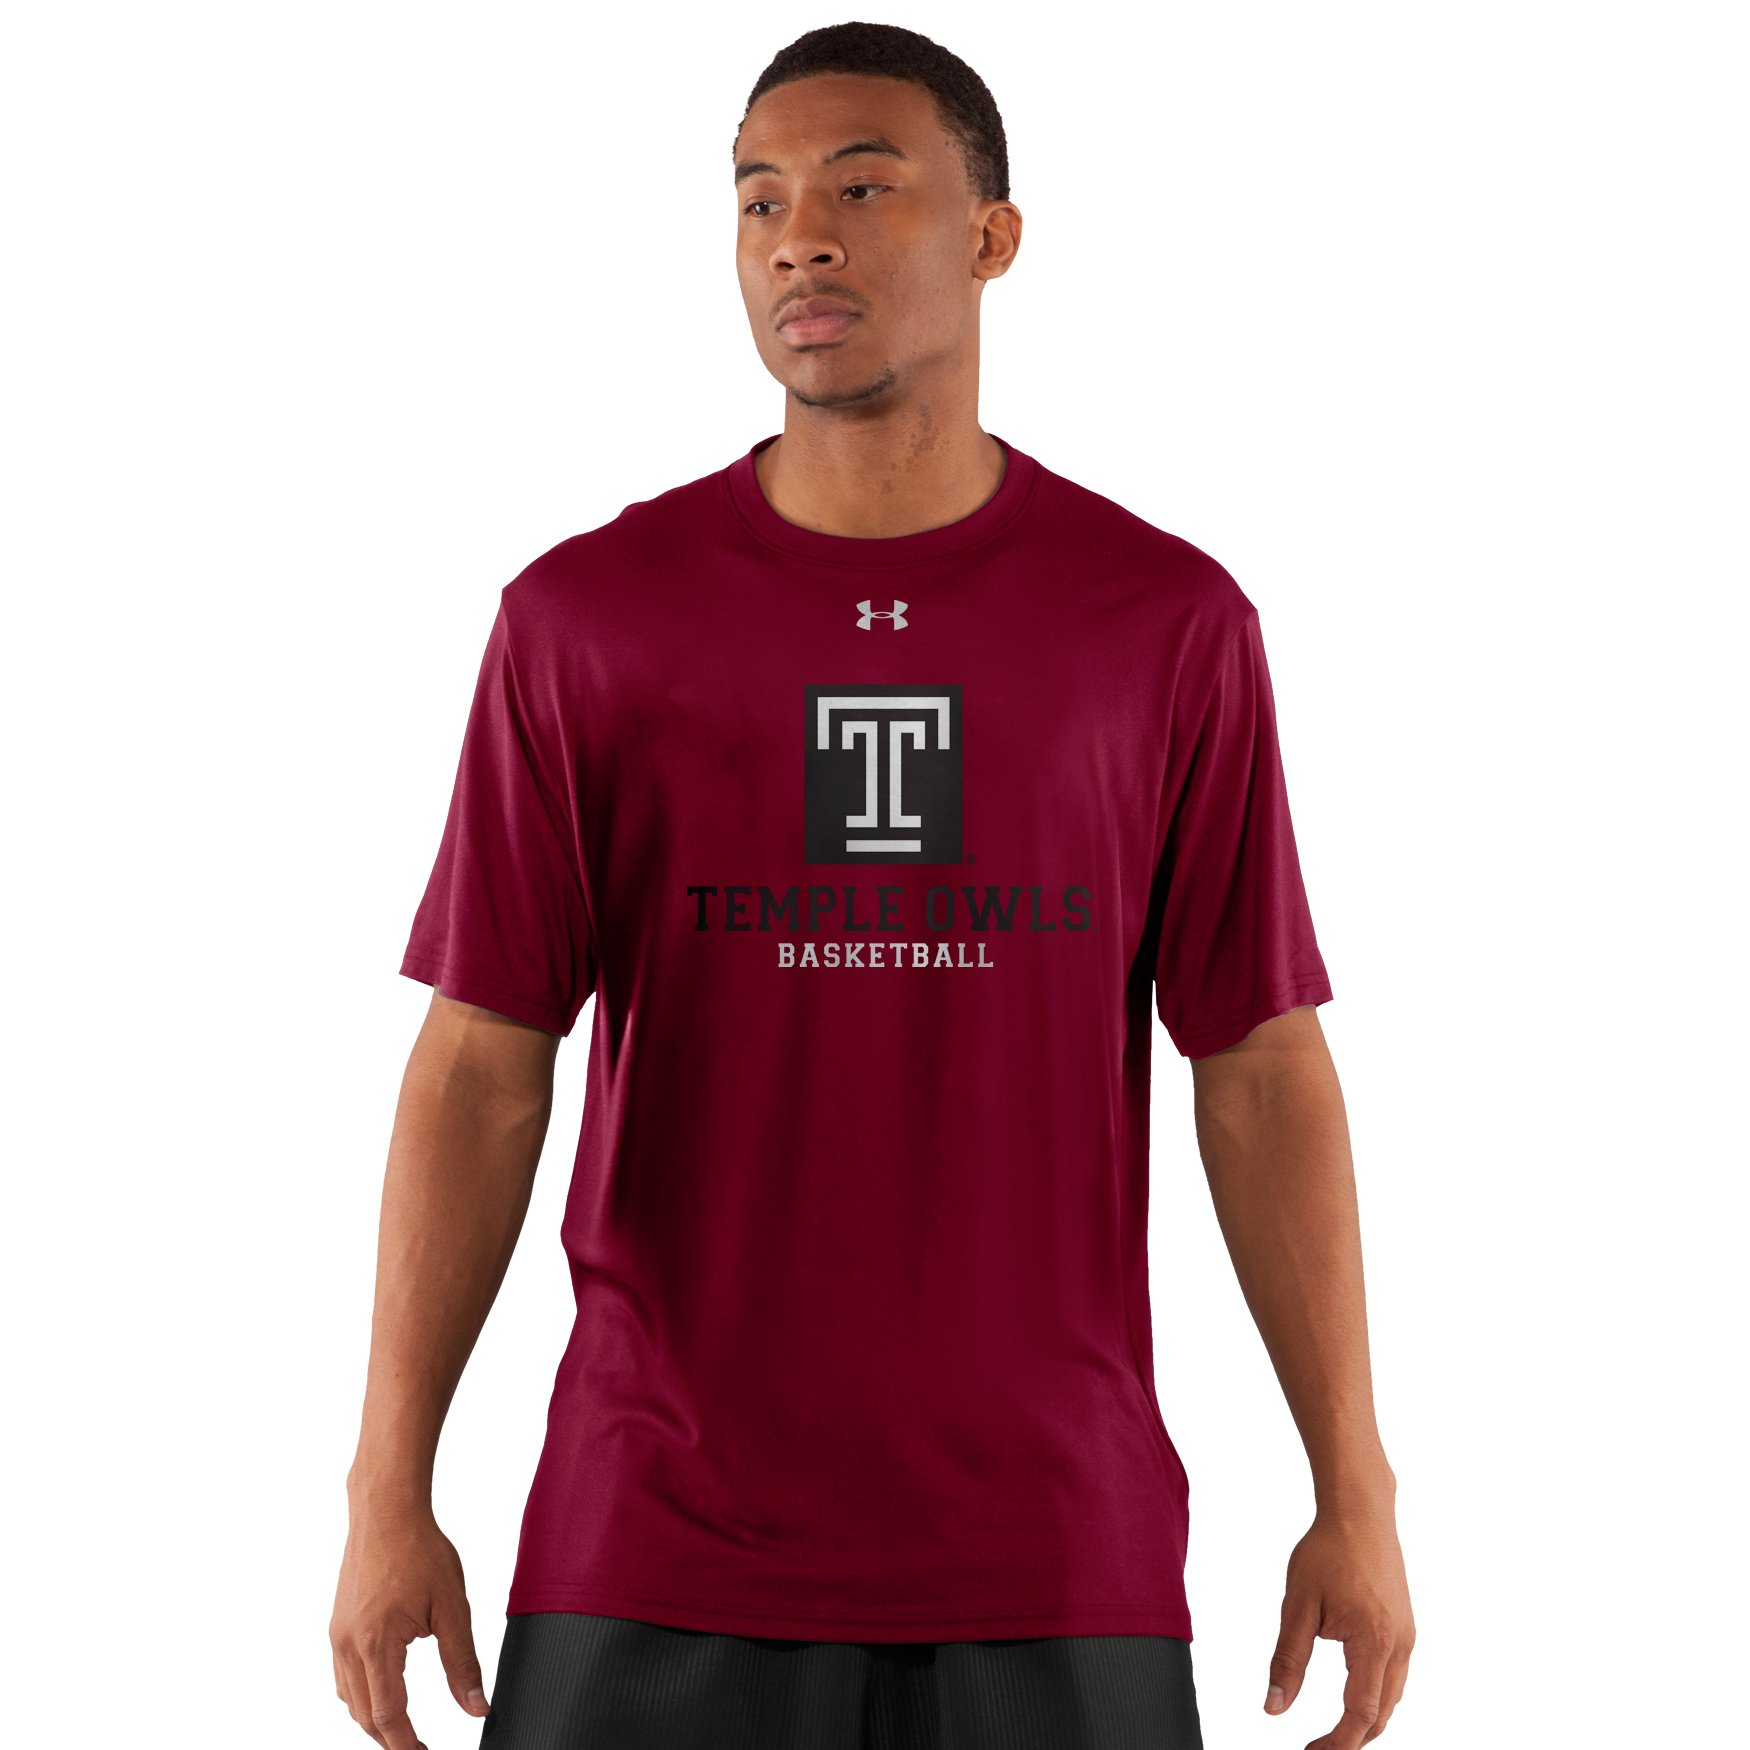 Under Armour Temple UA Tournament T Shirt